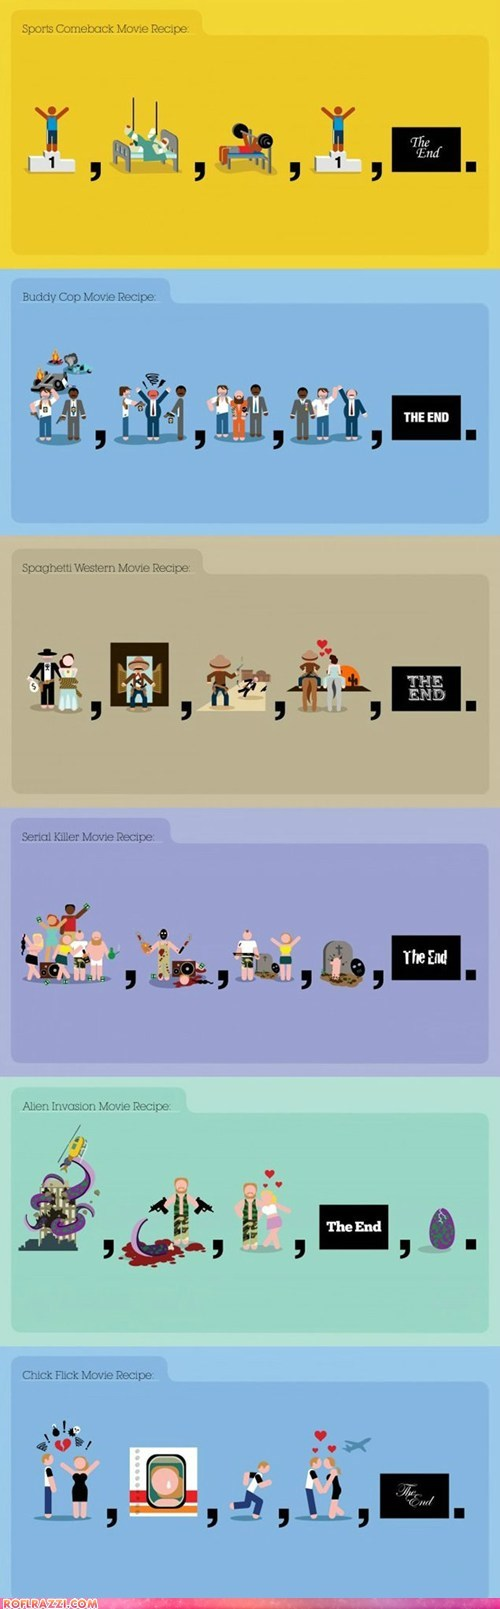 film funny hbo infographic Movie recipe